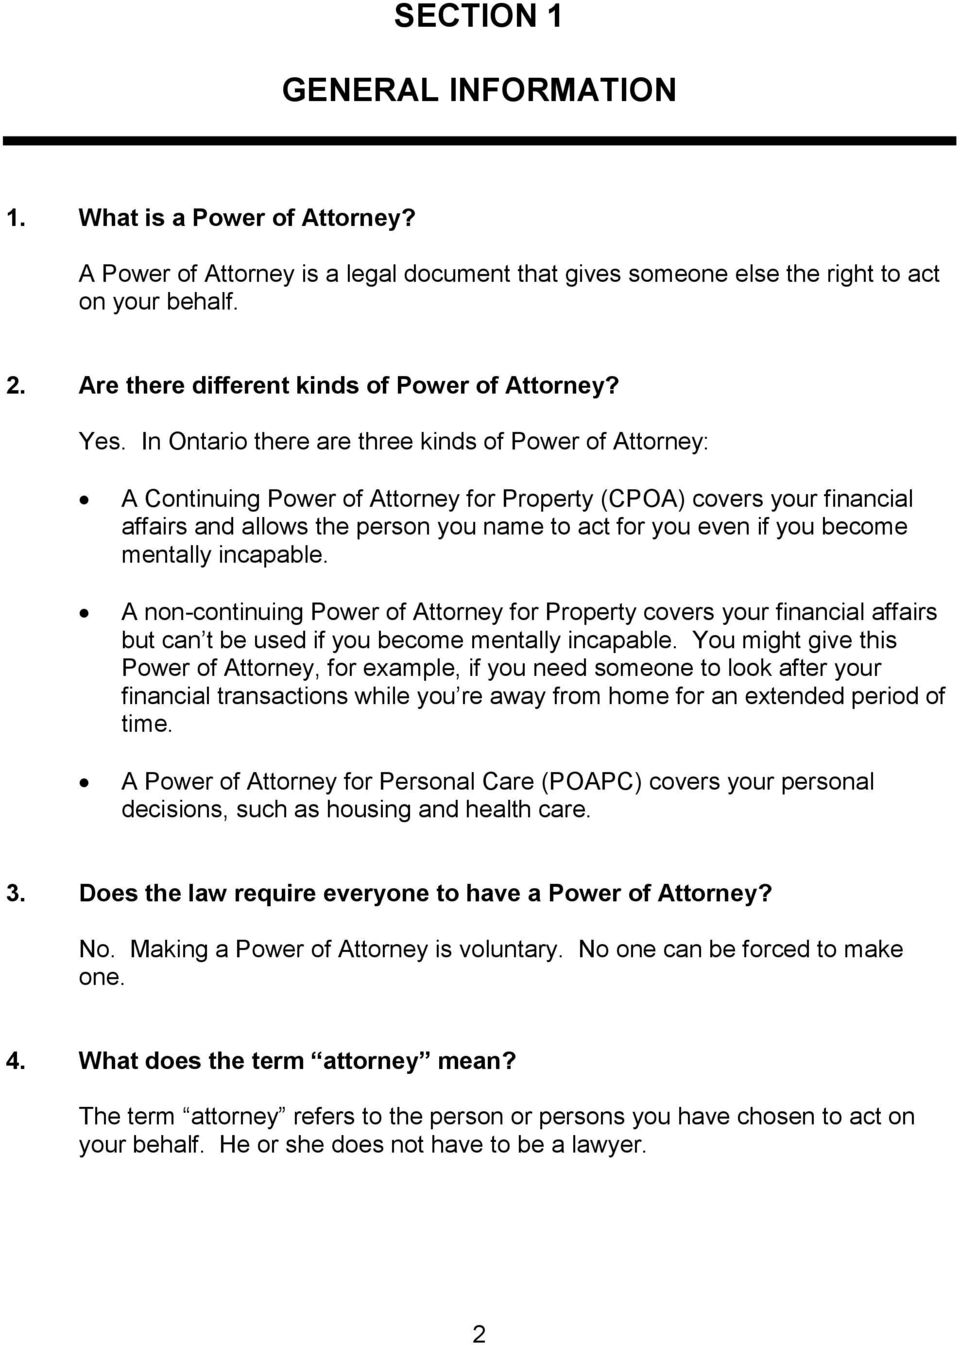 In Ontario there are three kinds of Power of Attorney: A Continuing Power of Attorney for Property (CPOA) covers your financial affairs and allows the person you name to act for you even if you